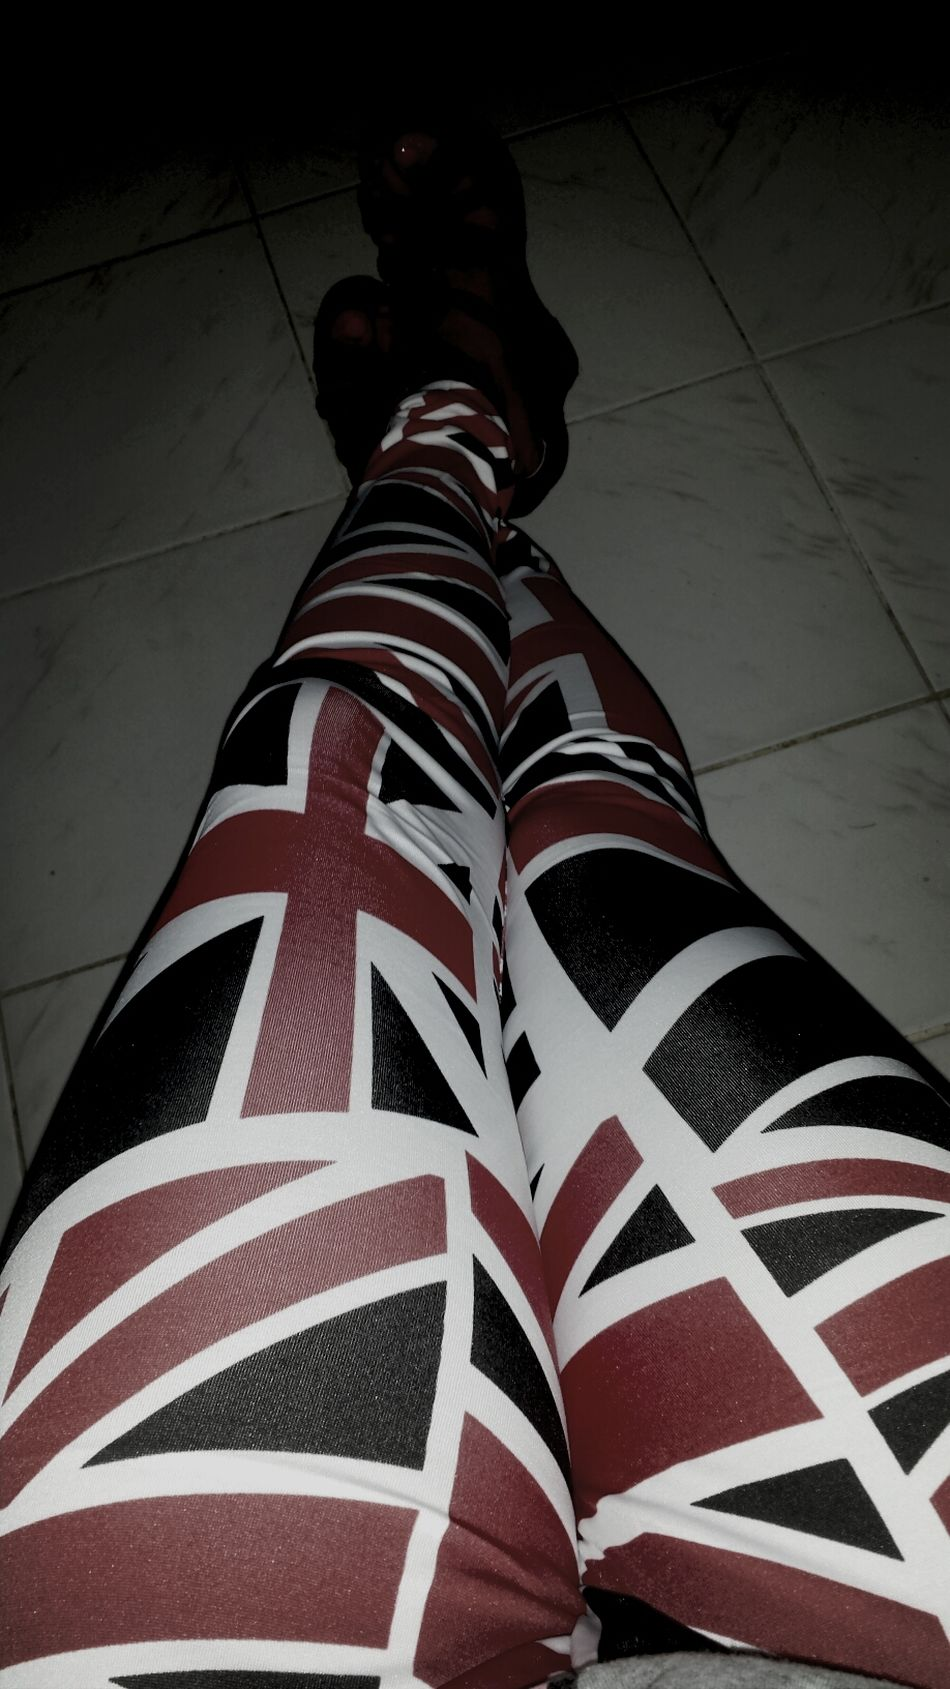 ♡ PhonePhotography My Leggings :) Happy Fashion